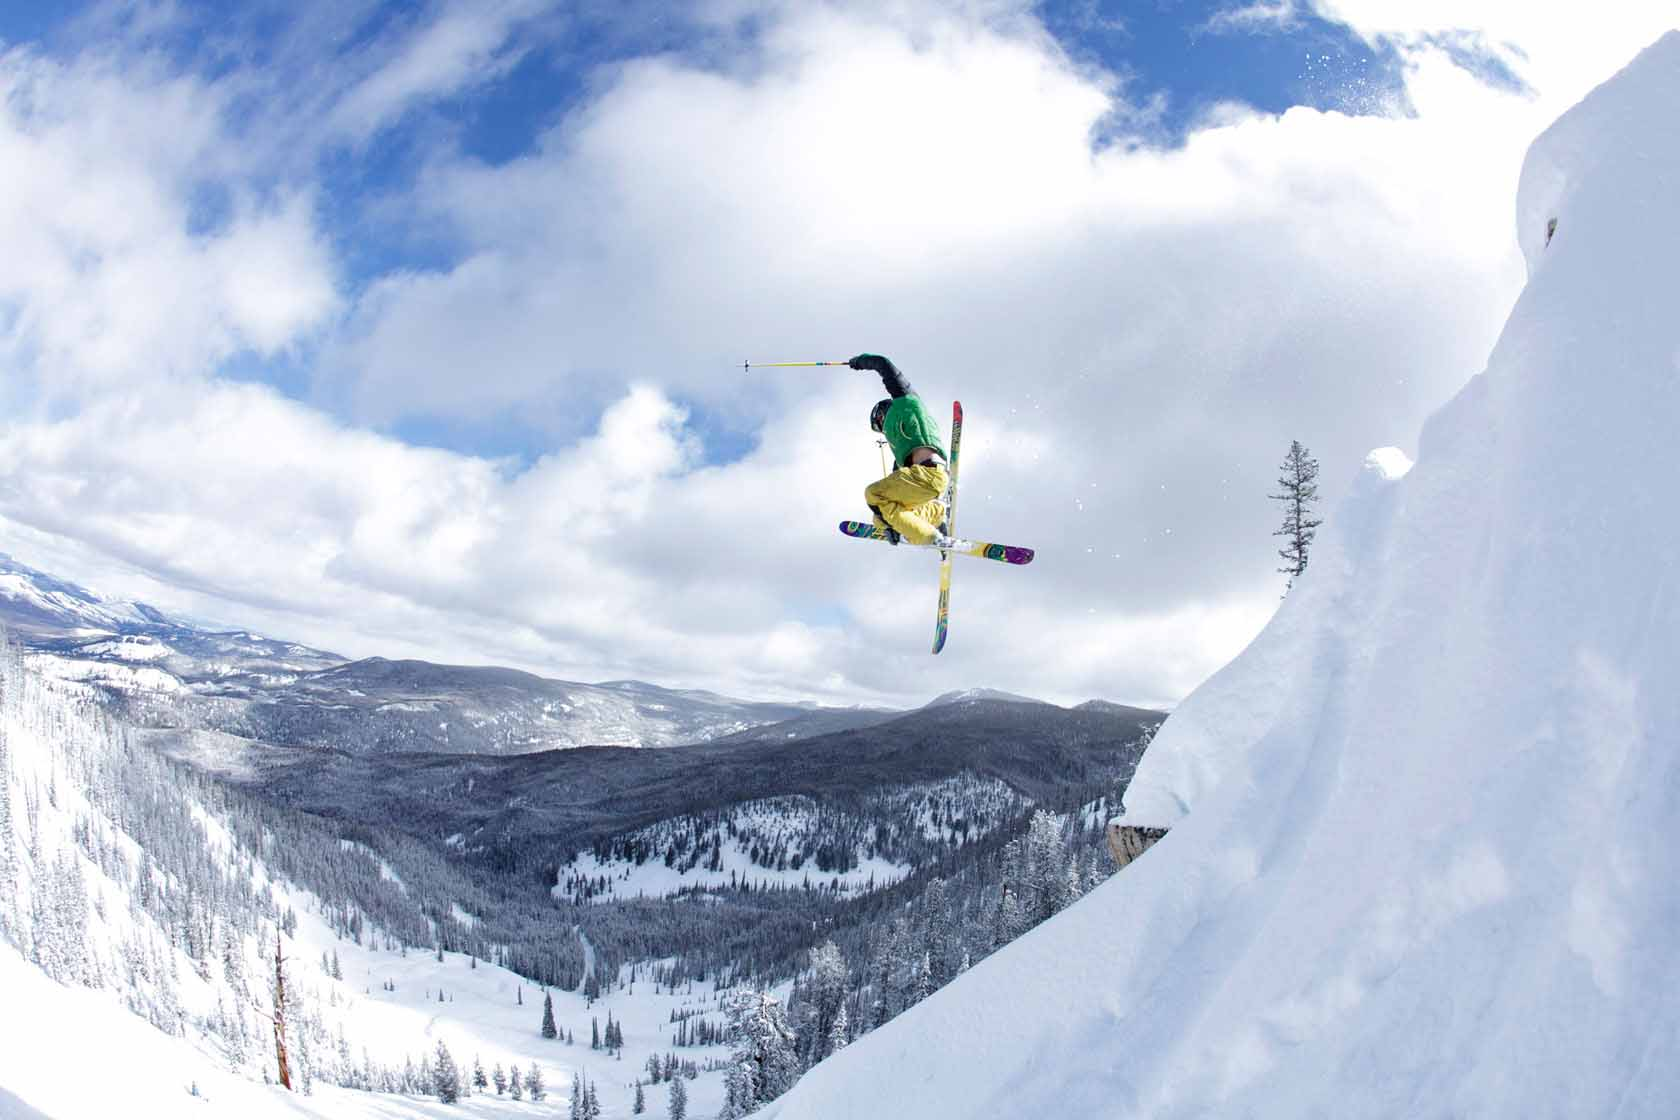 places to go | ski areas & resorts